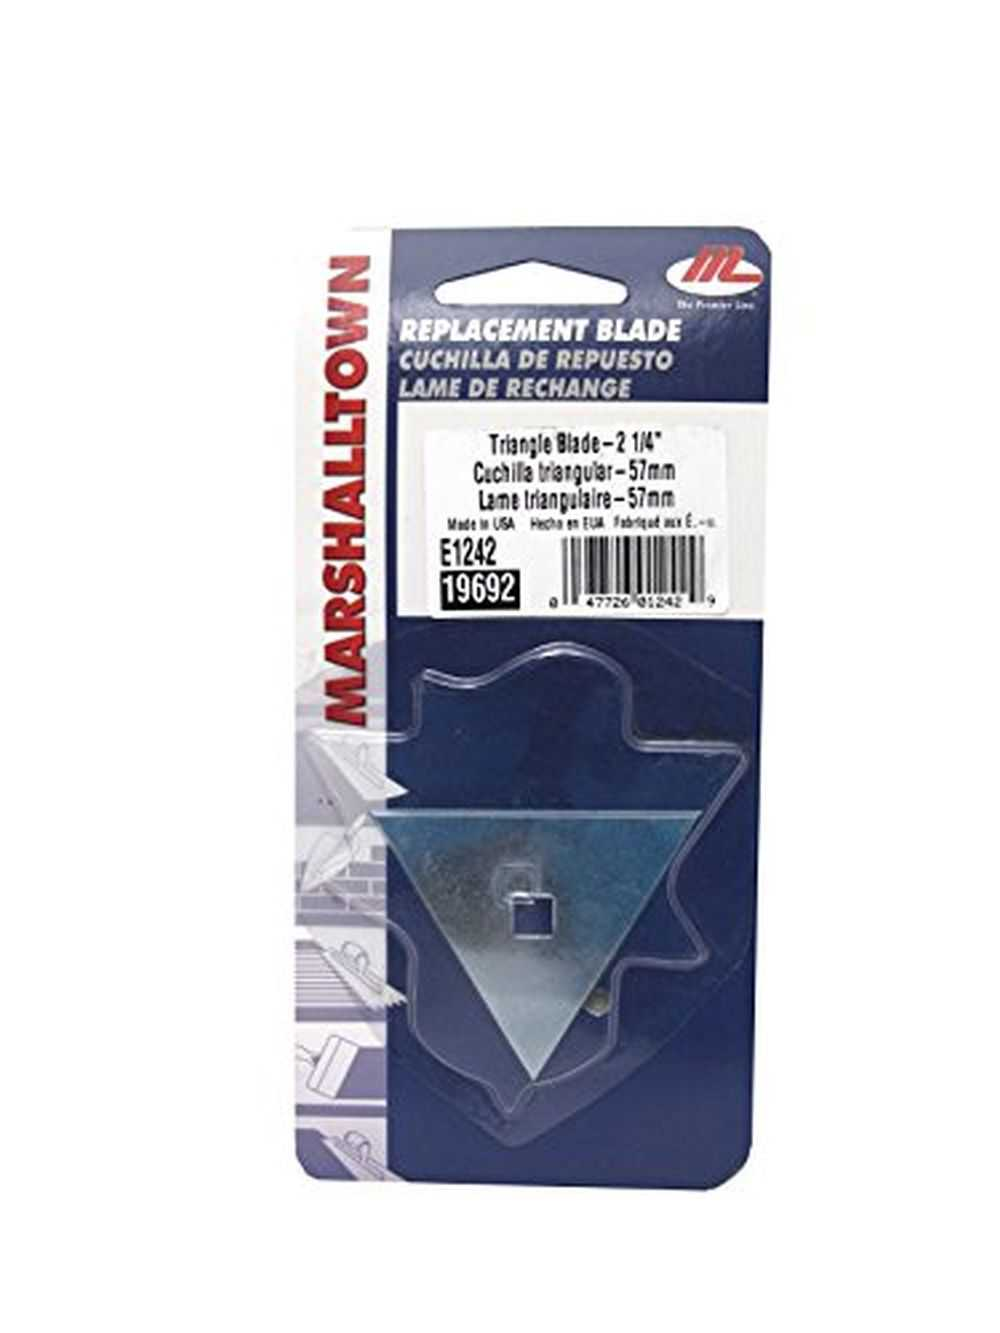 Marshalltown E1242 2-1/4' Triangle Blade